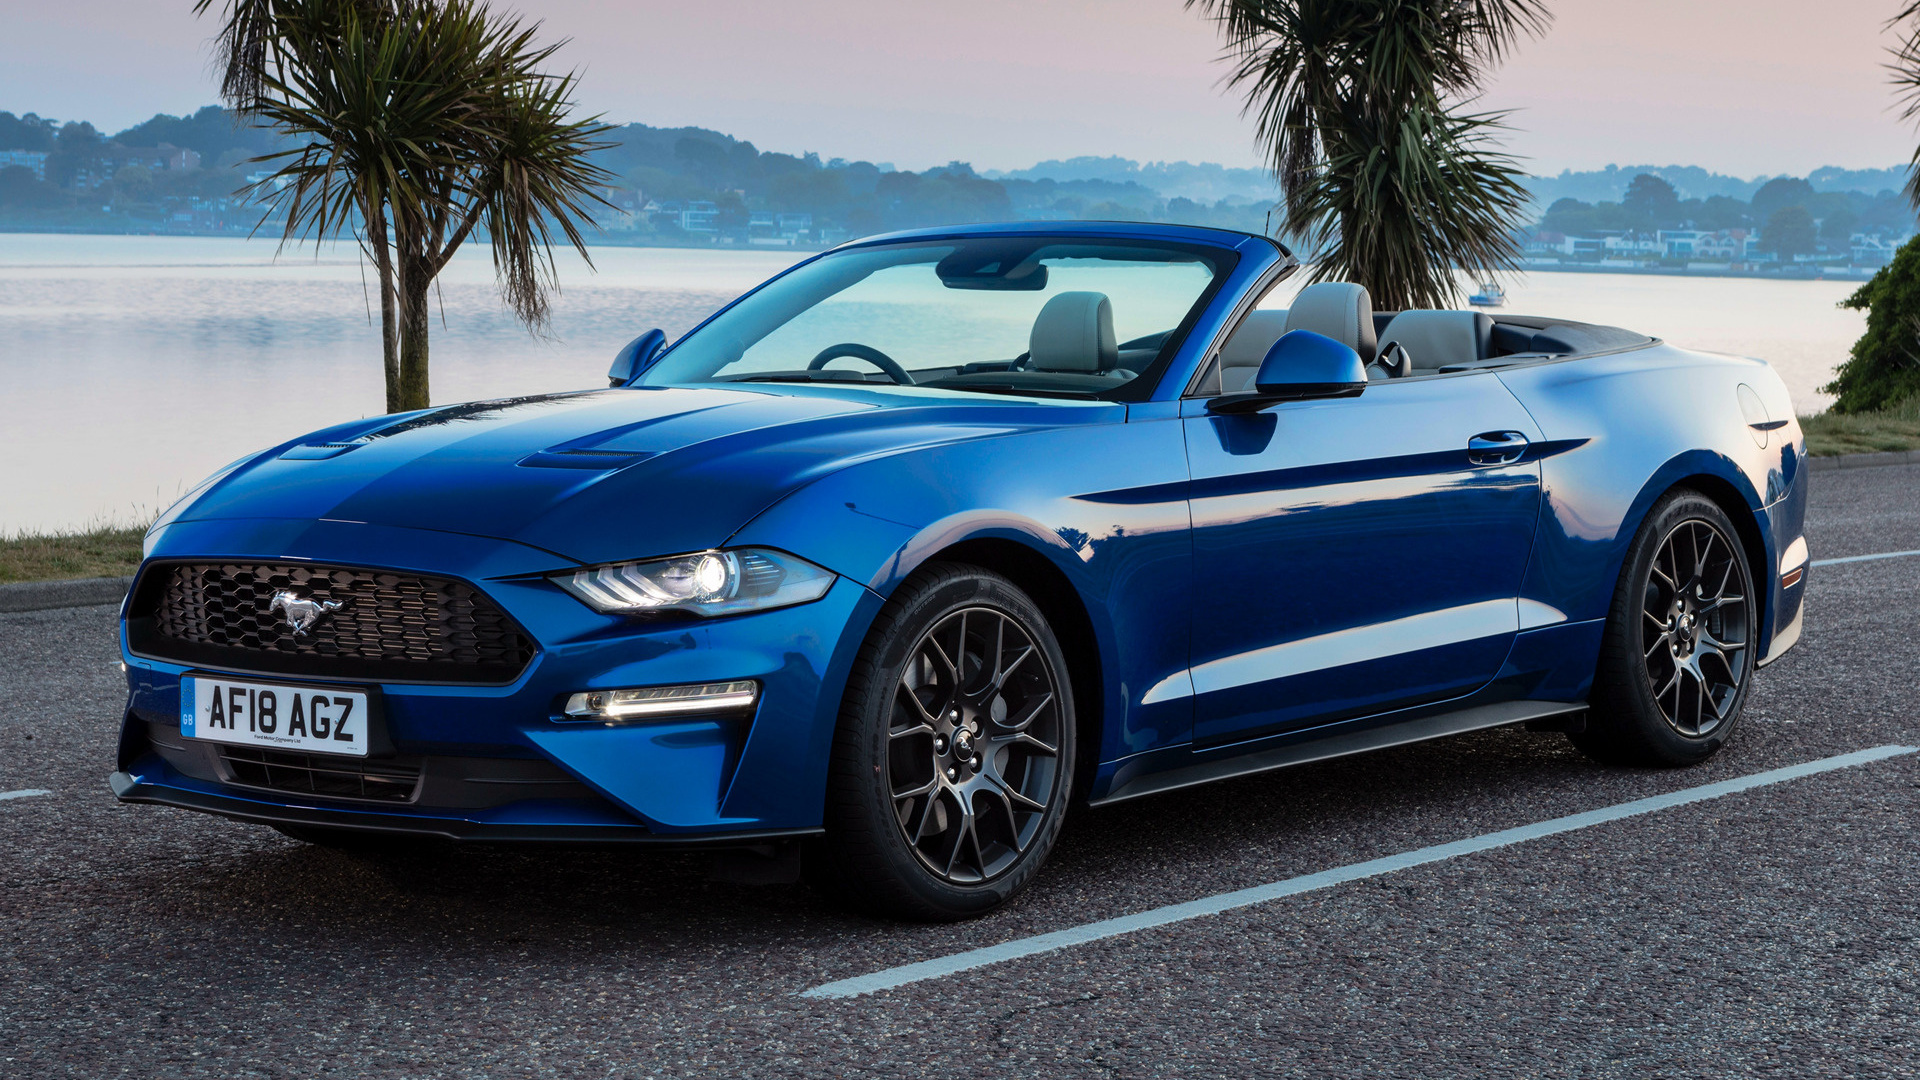 2018 Ford Mustang Convertible (UK) - Wallpapers and HD Images | Car Pixel